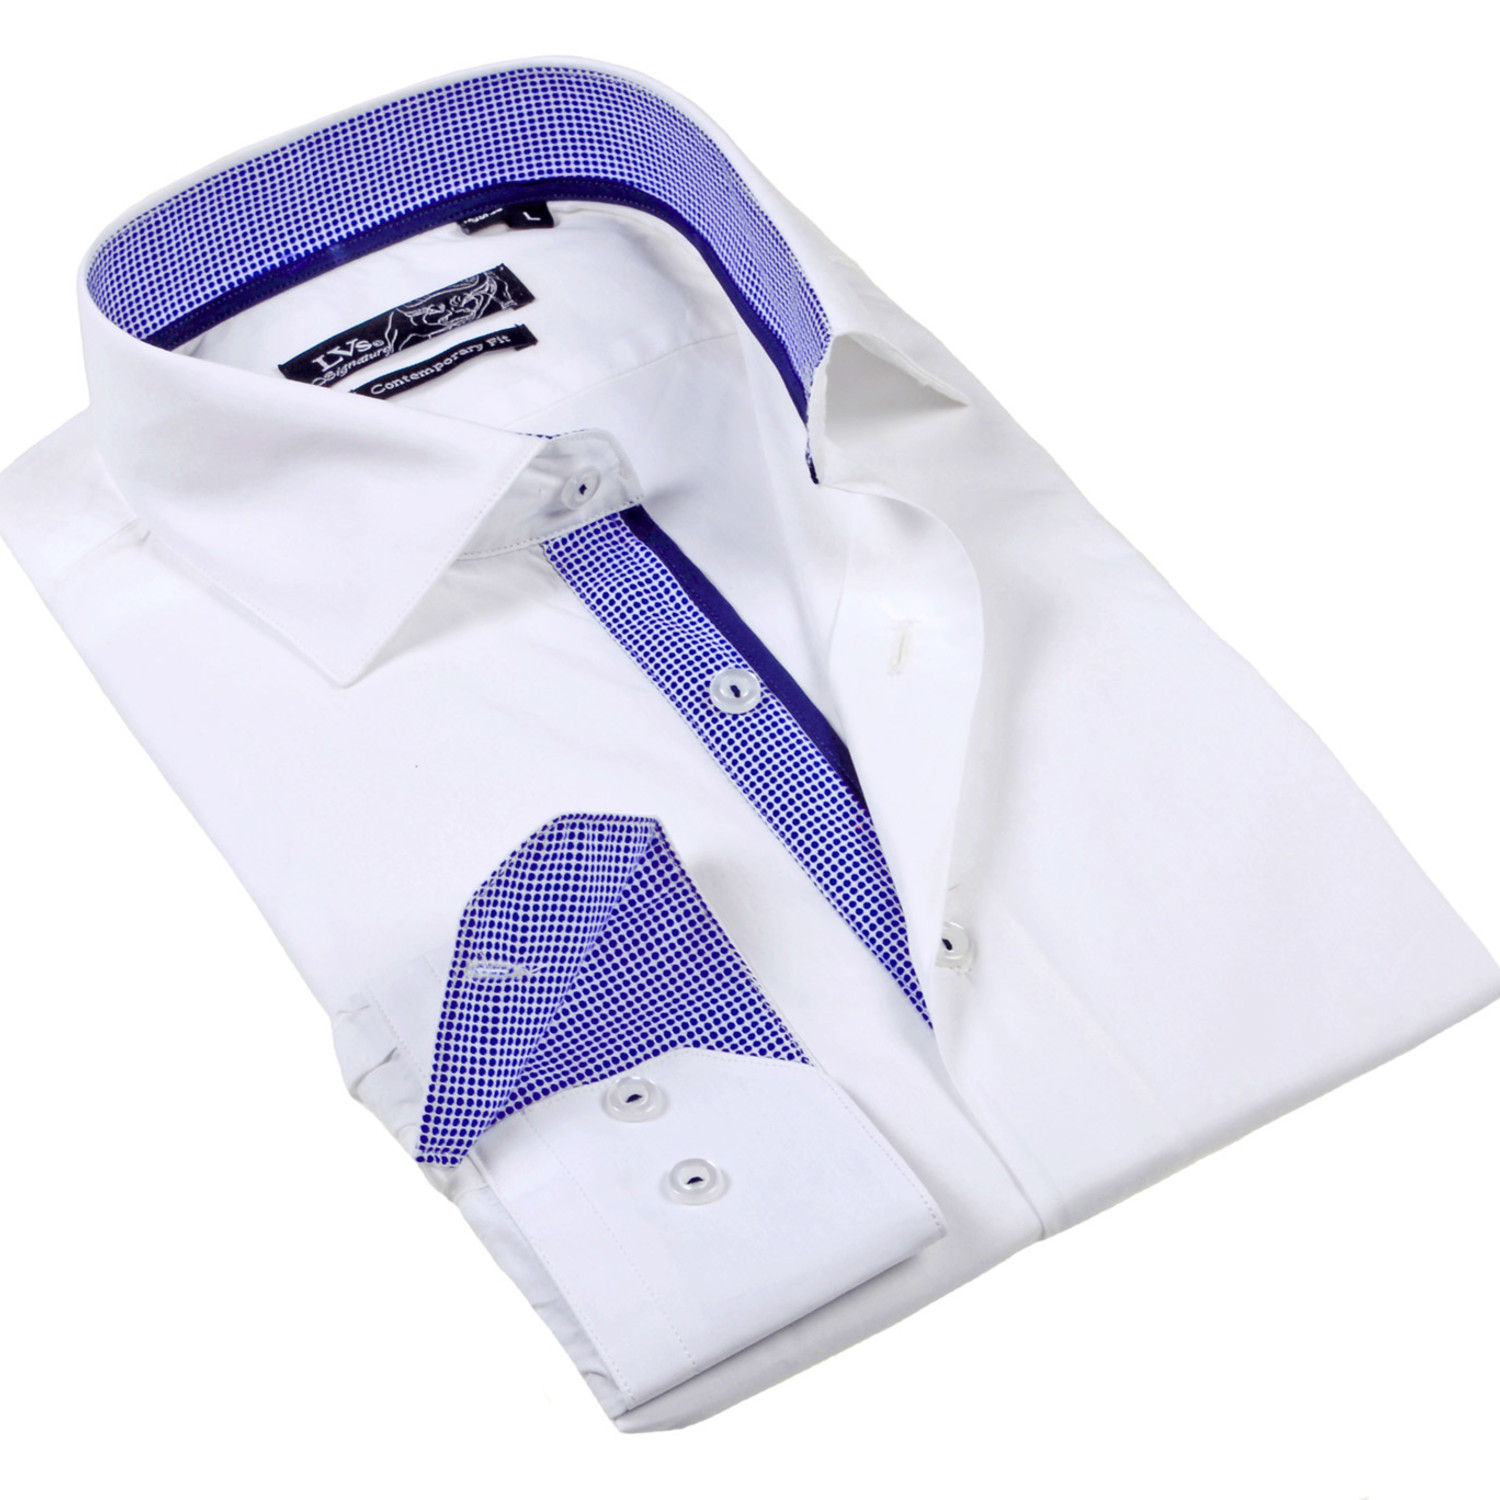 Solid Button Up Dress Shirt White S Lvs By Levinas